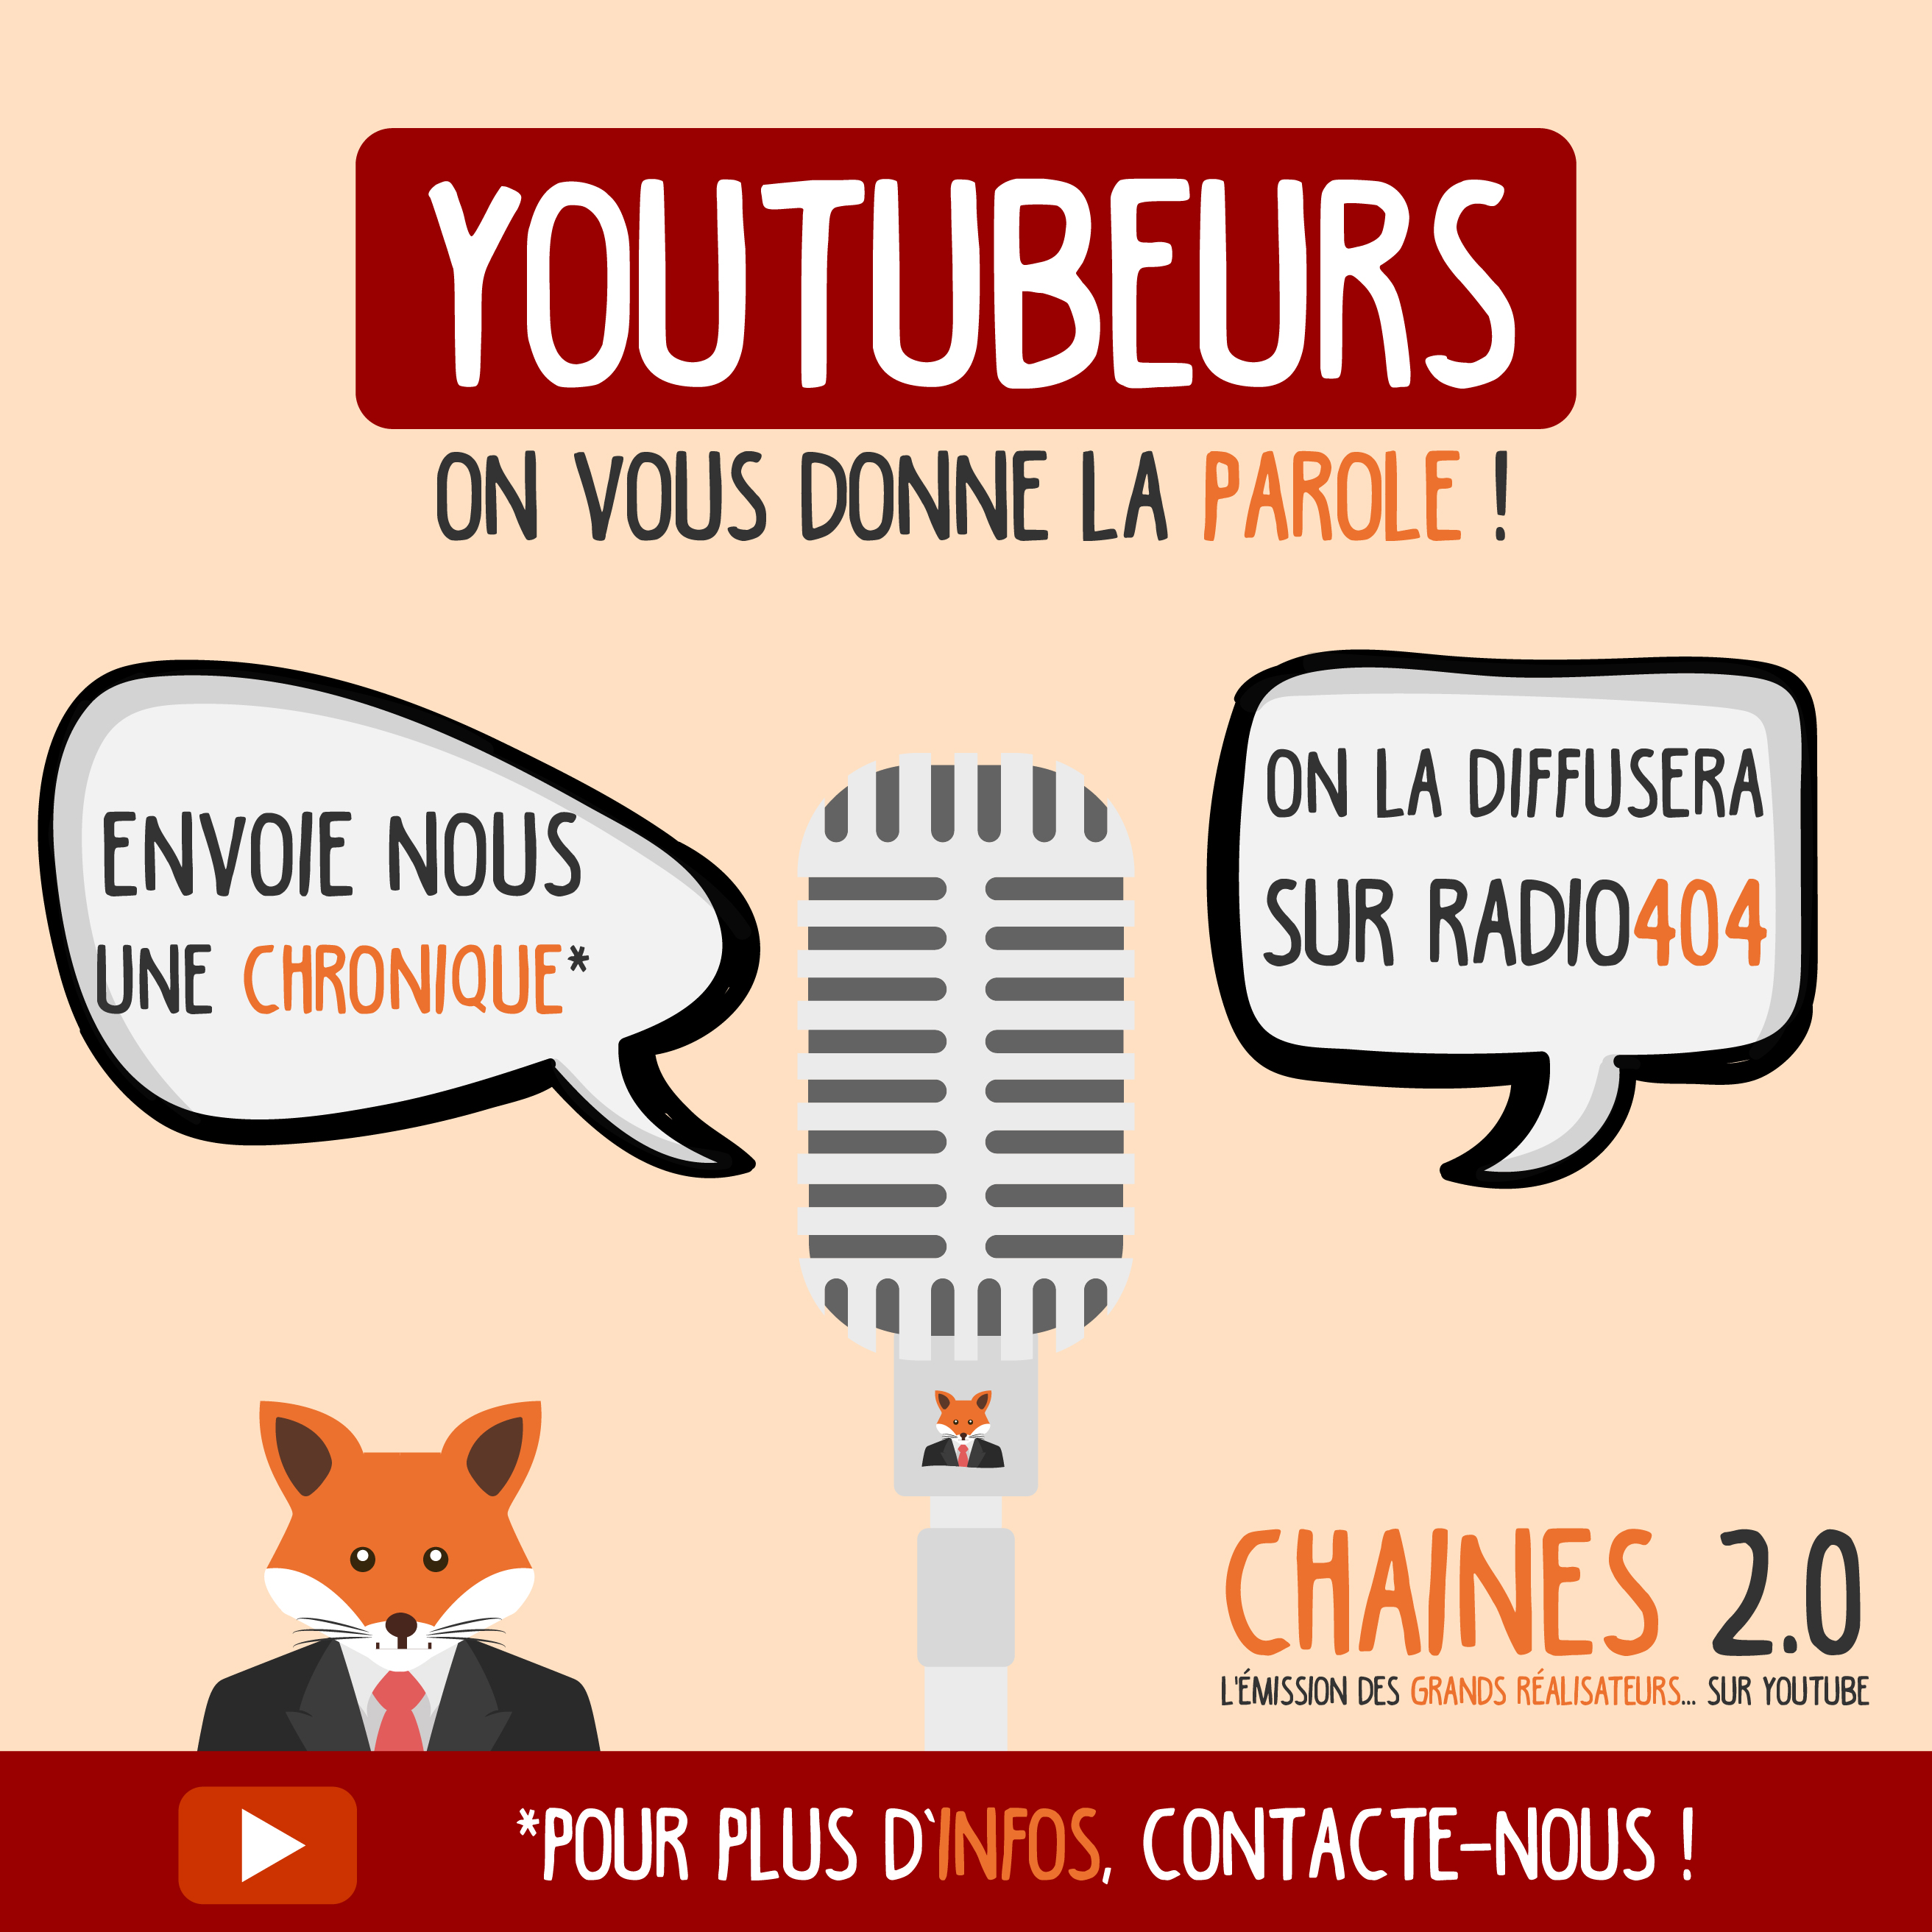 Radio404 - Annonce YouTube et Youtubeurs